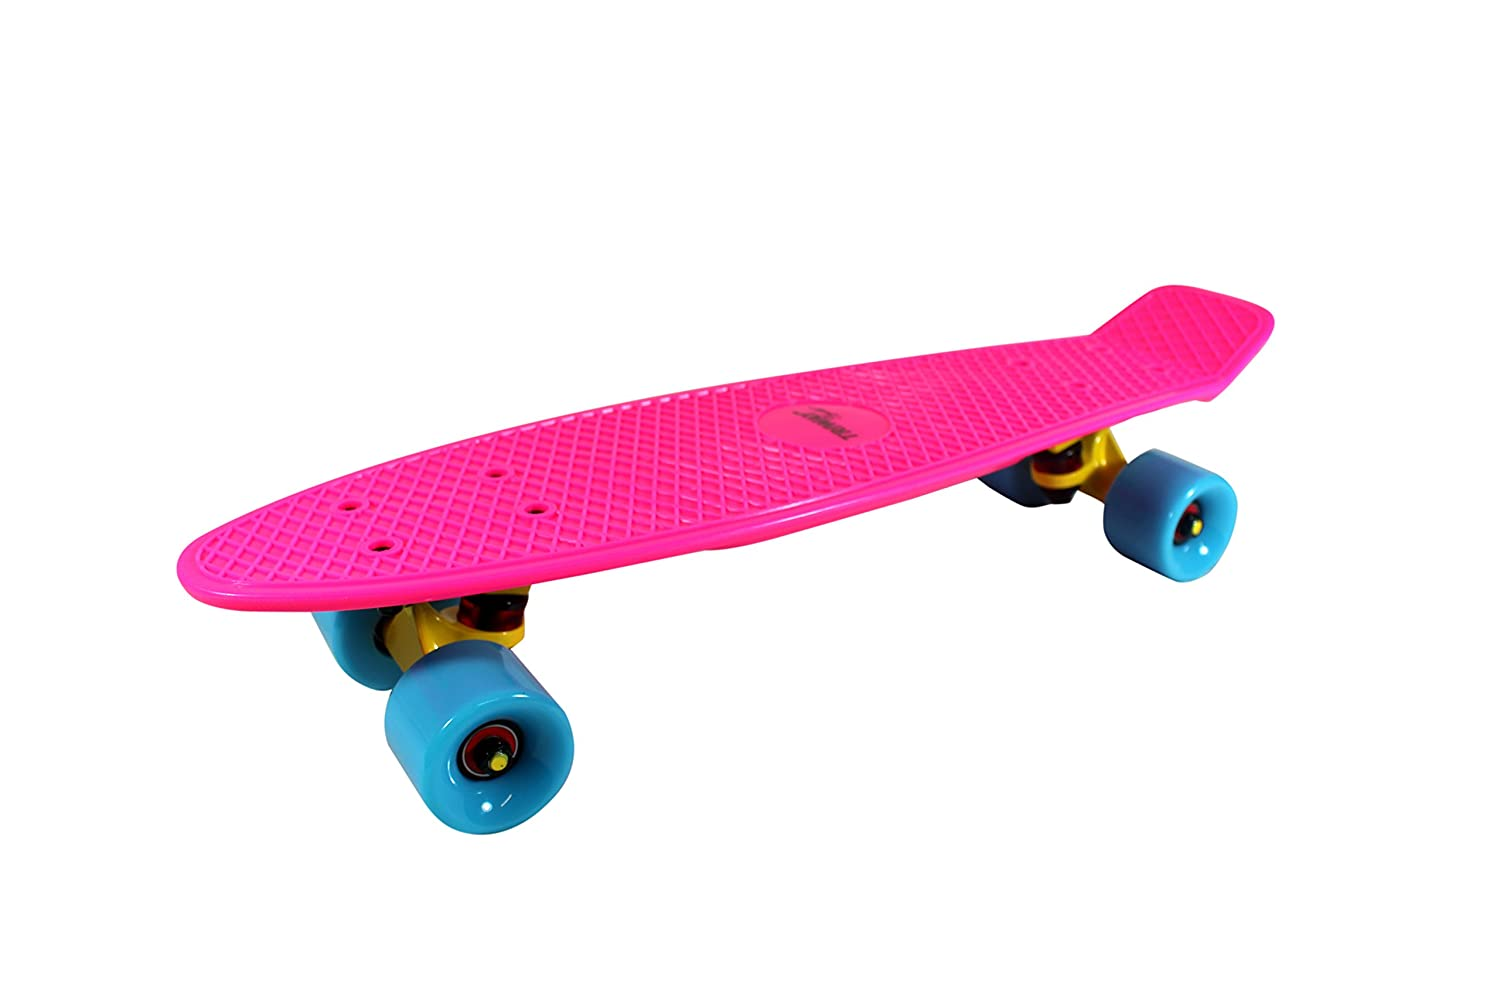 "Mini-Skateboard Retro Board ""Roller Girl Pink"" von Triway Sports - Fun und Action für Roller Girls mit diesem stylishen und coolen Retro-Highlight! - Max. Benutzergewicht: 80 kg"